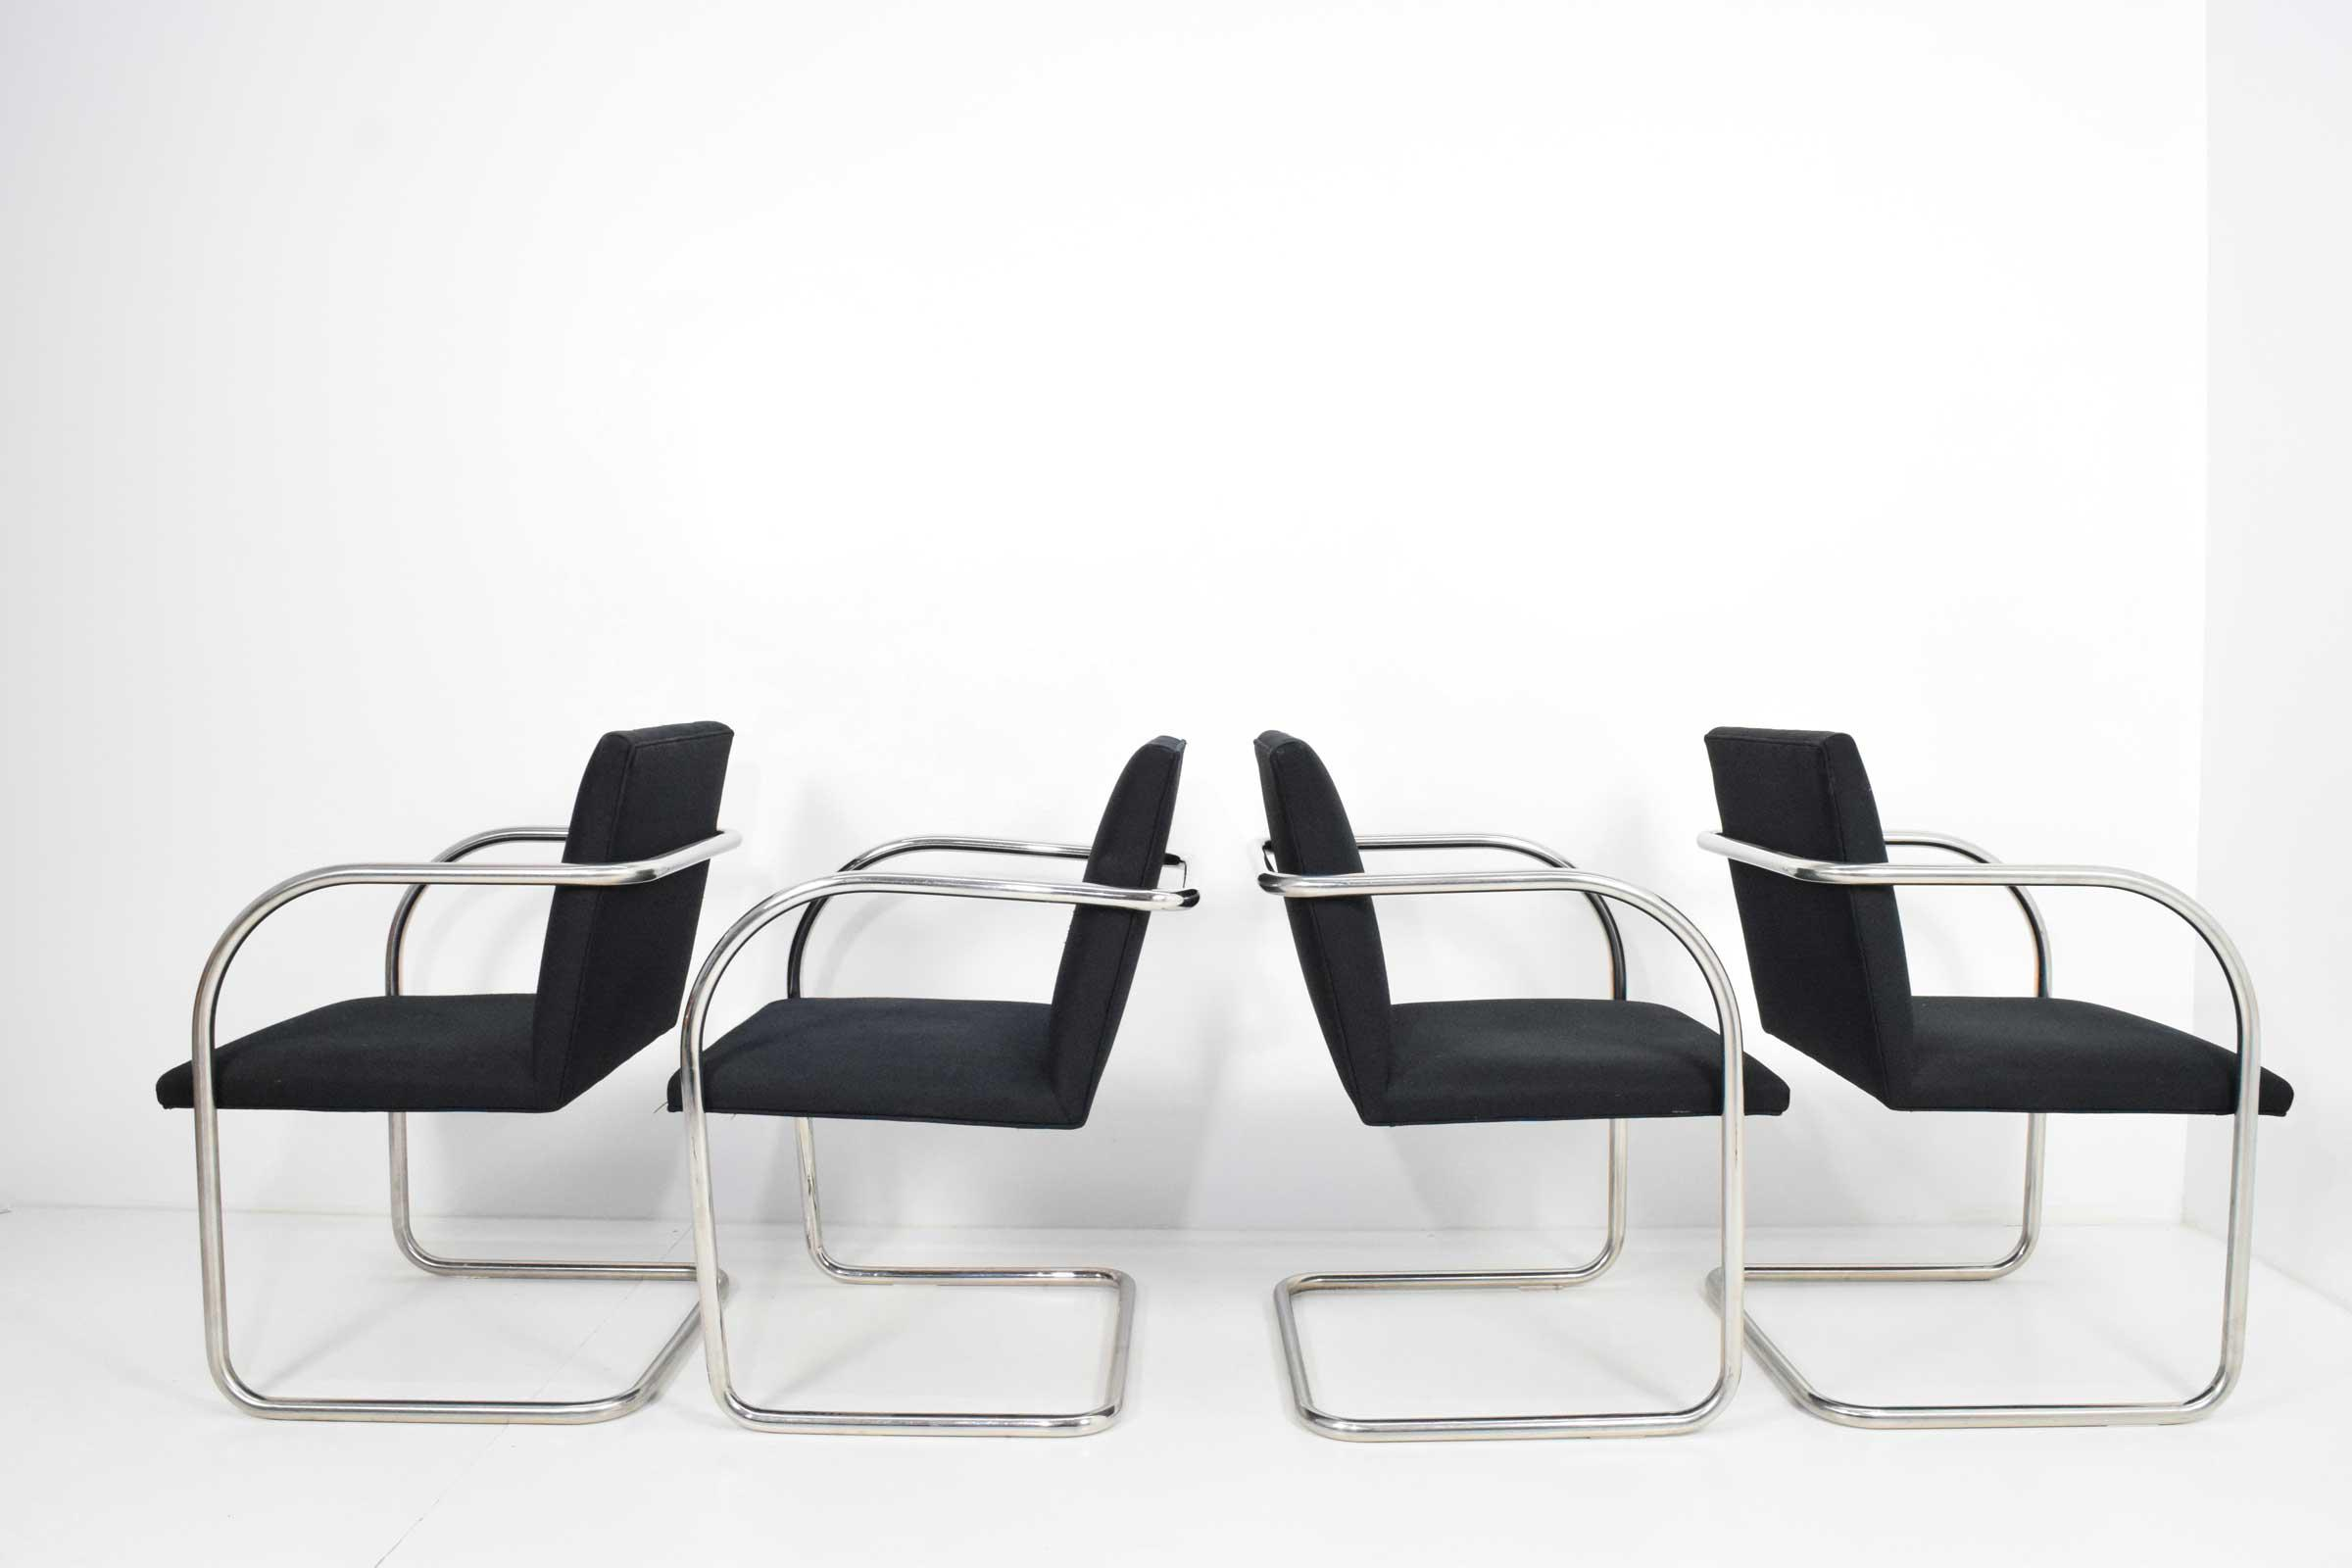 We Have A Set Of Four Brno Chairs By Knoll In Polished Stainless Steel. The